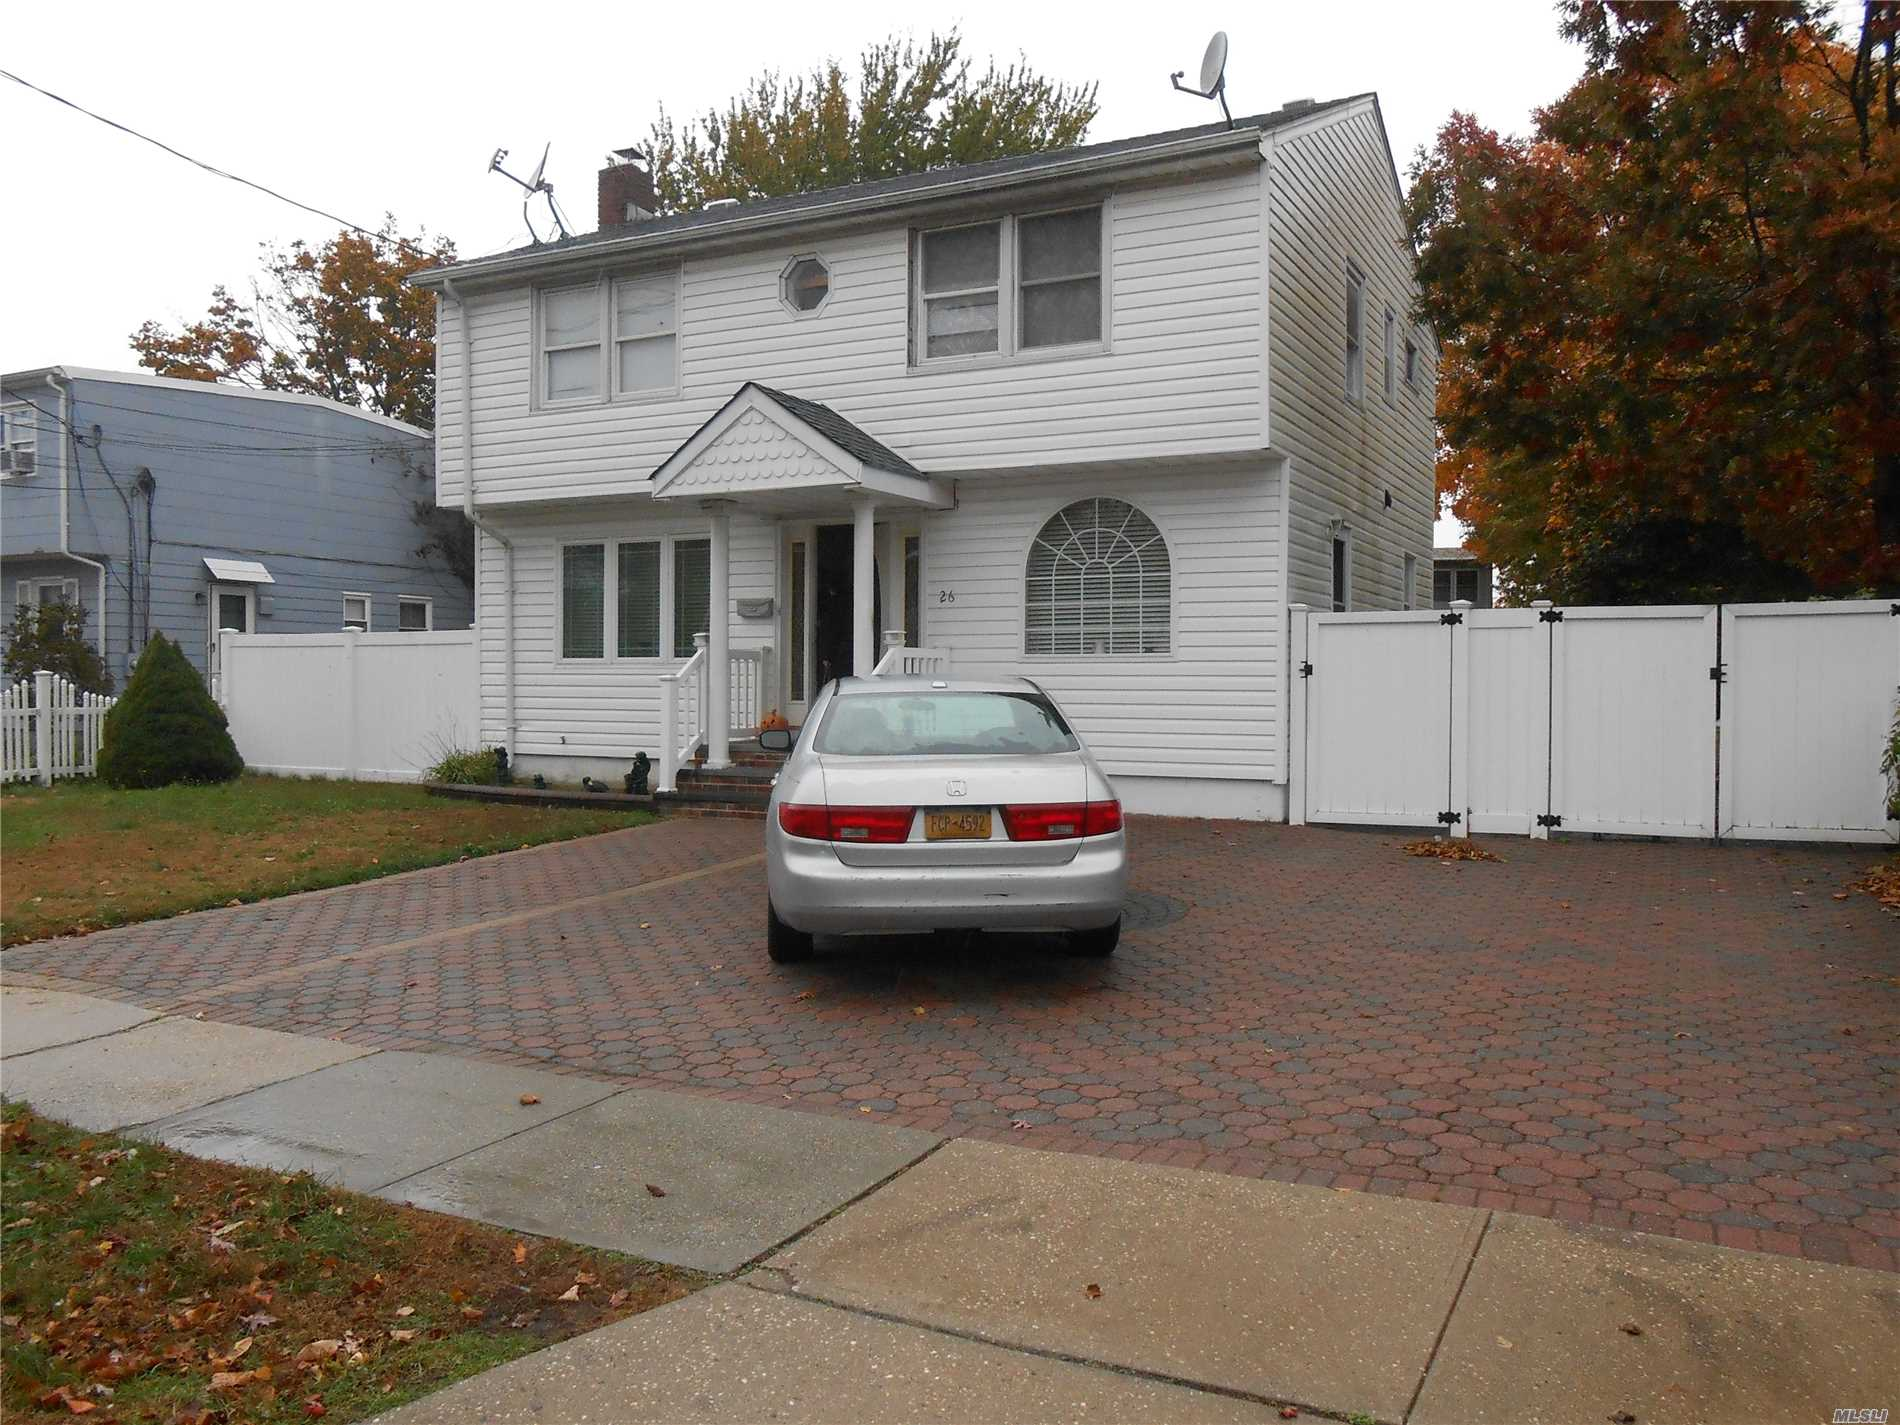 Home Updated Nicely With 4 Bedrooms, 2 Baths, Full Basement With Oce, And Close To Shopping